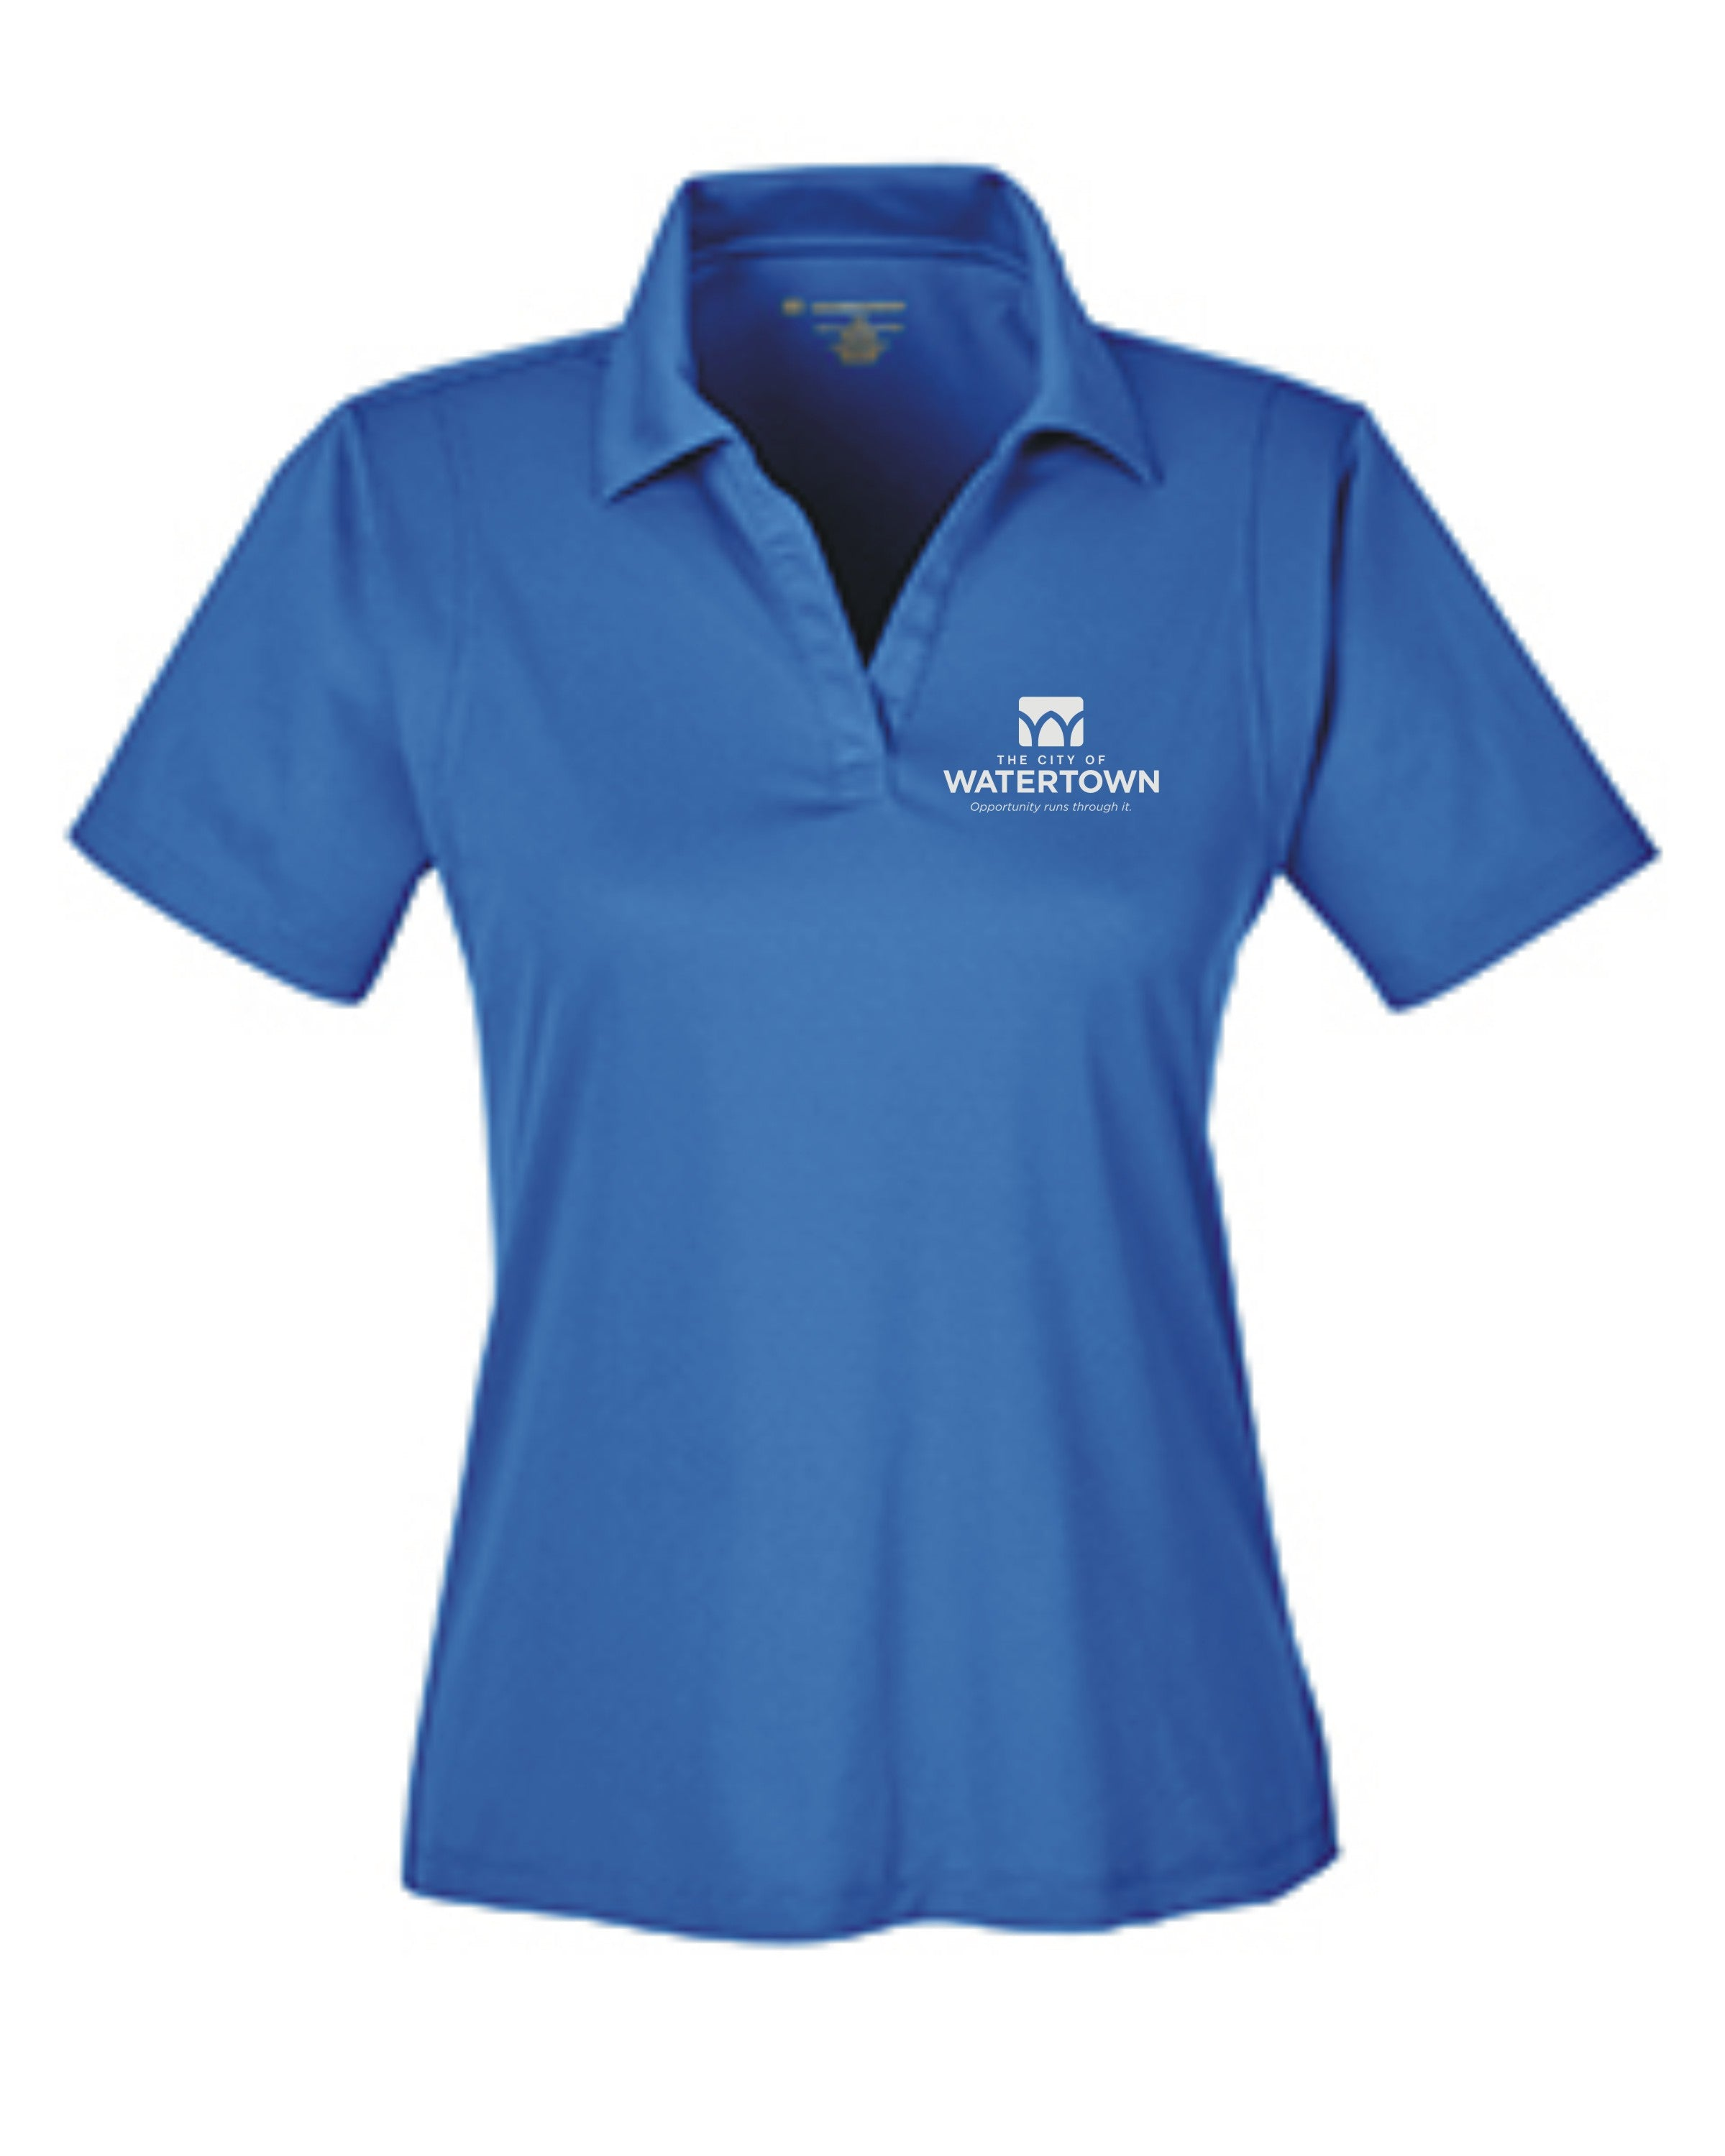 City of Watertown Ladies' Polo